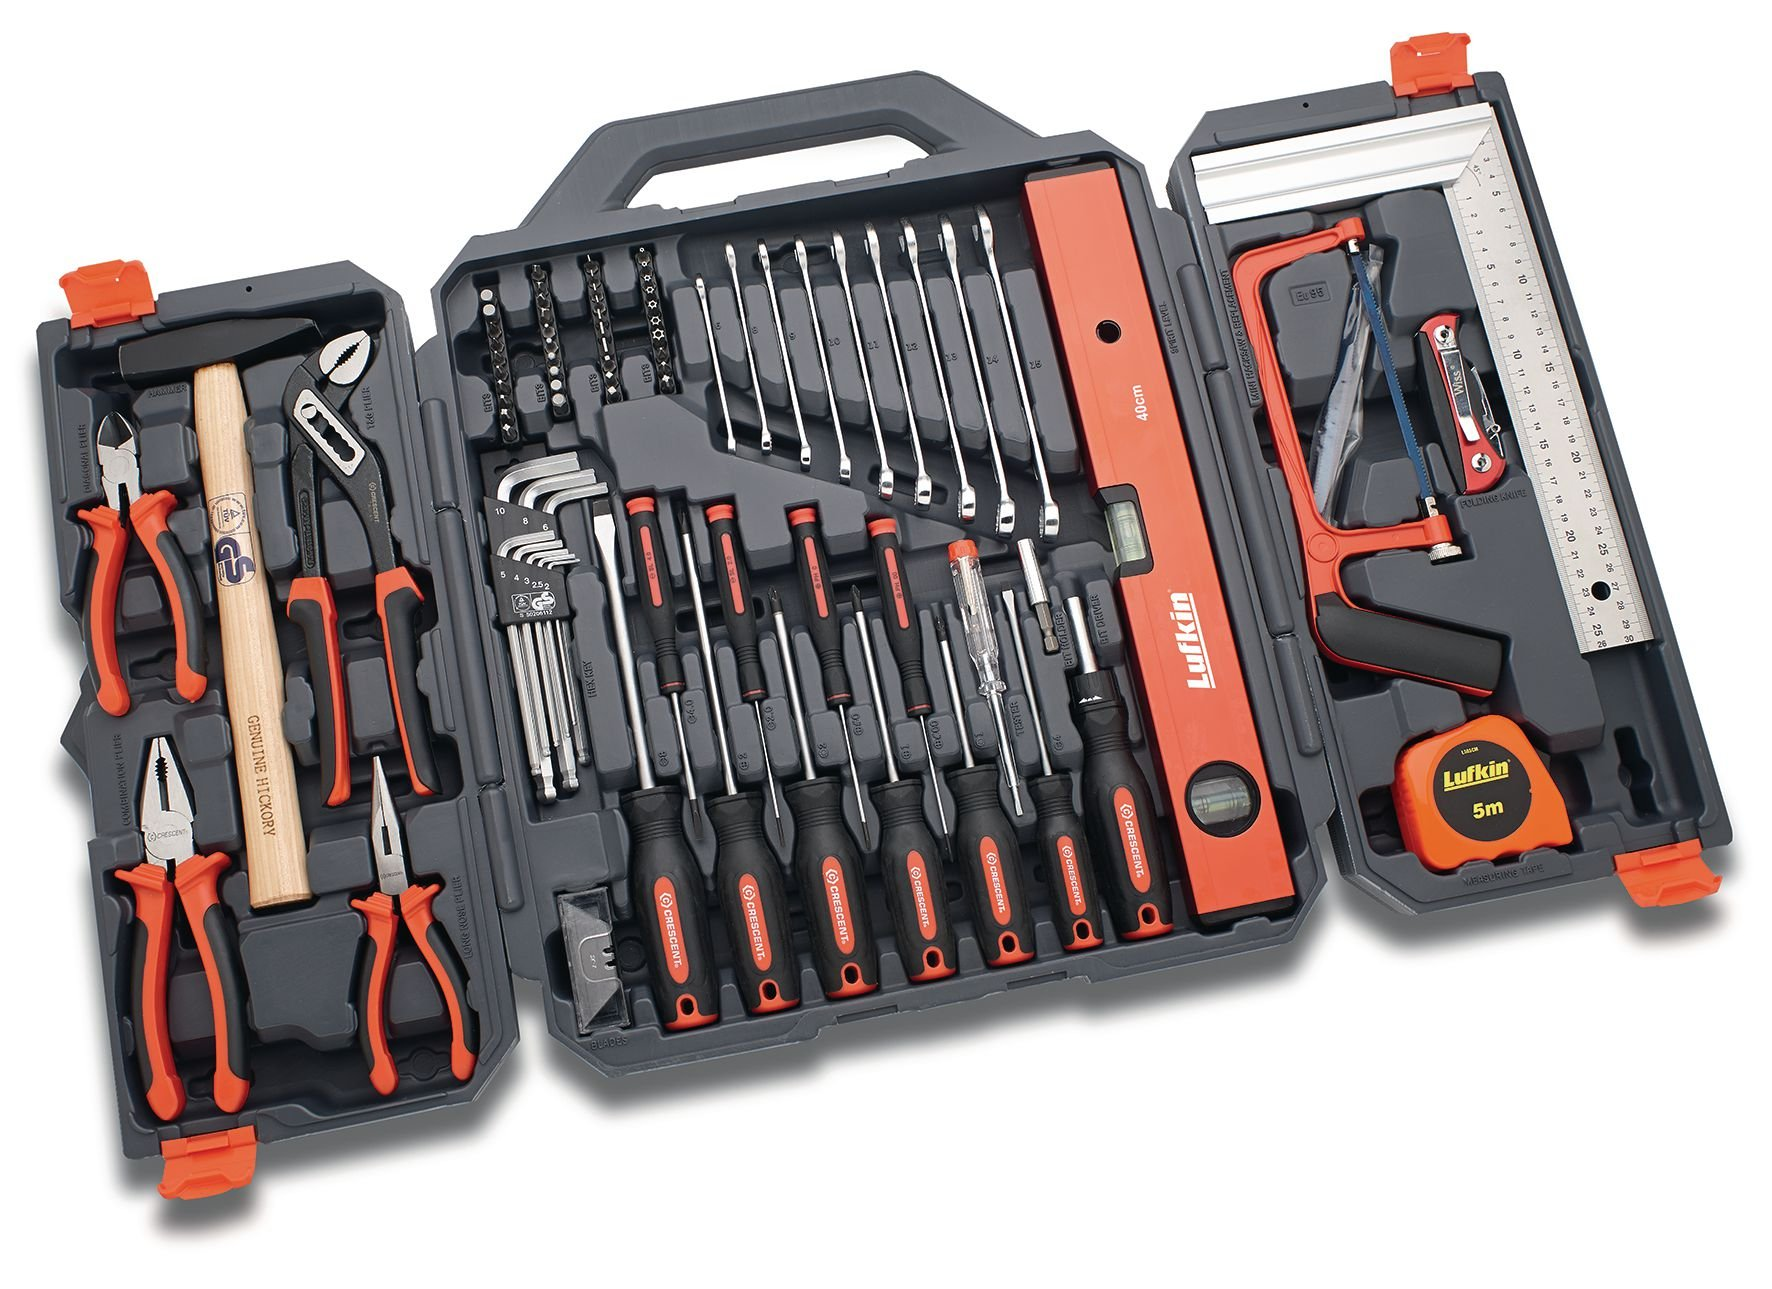 Crescent CTK95NEU Professional Home Owner Tool Set with 95 Tools by Crescent